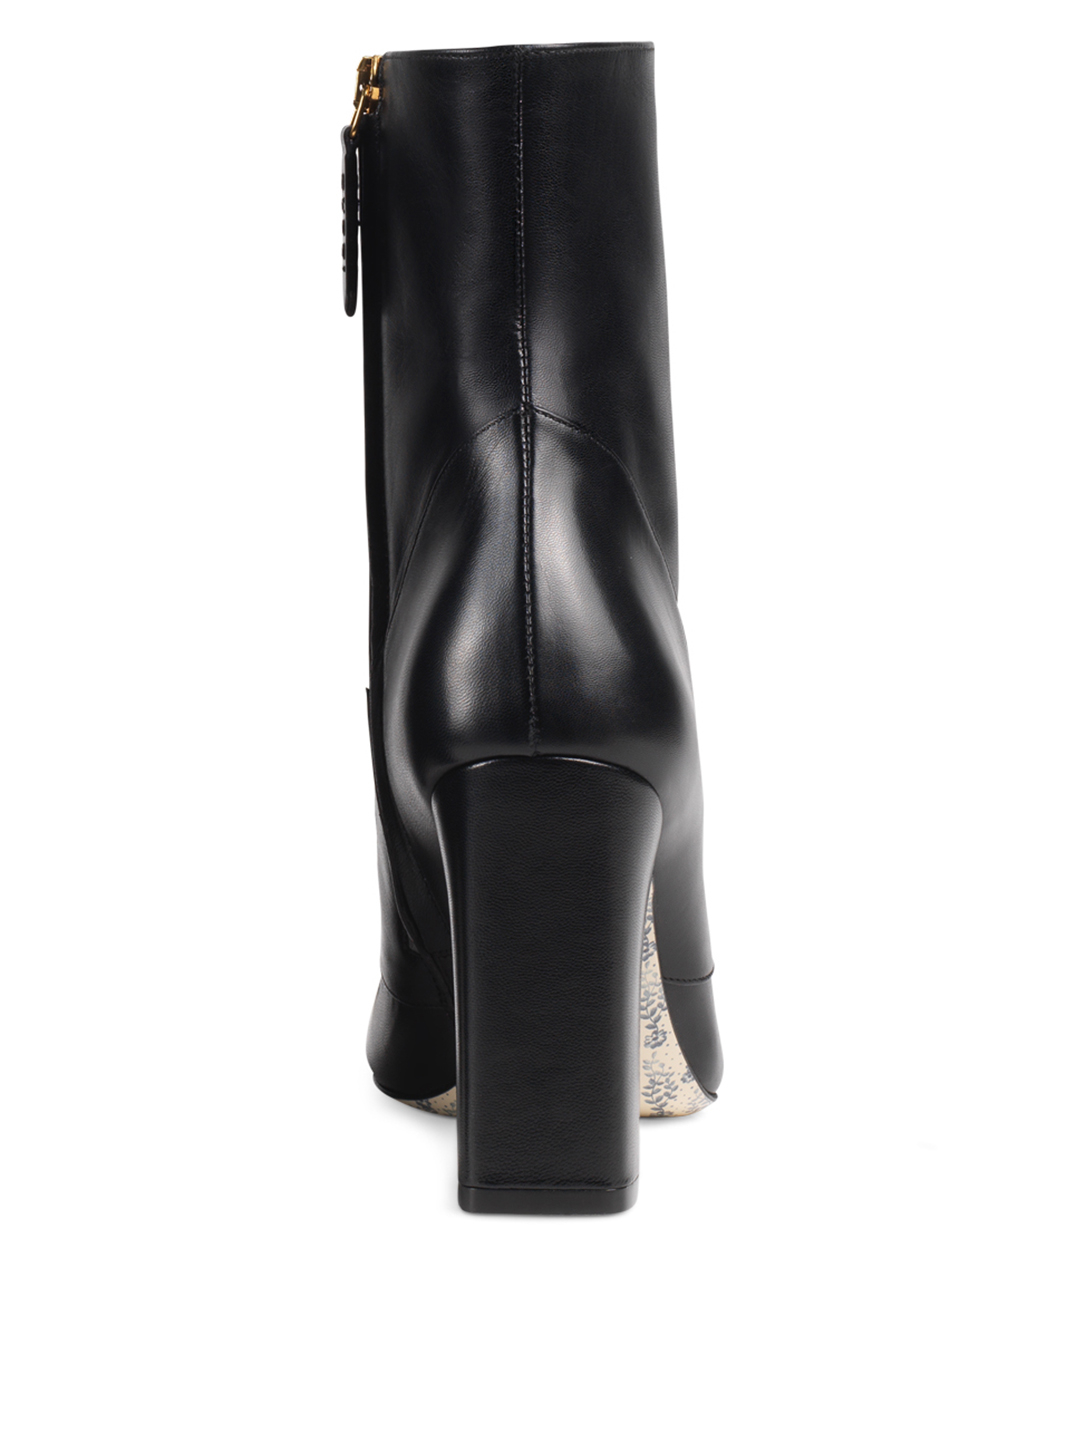 GUCCI Leather Ankle Boots With Double G Designers Black